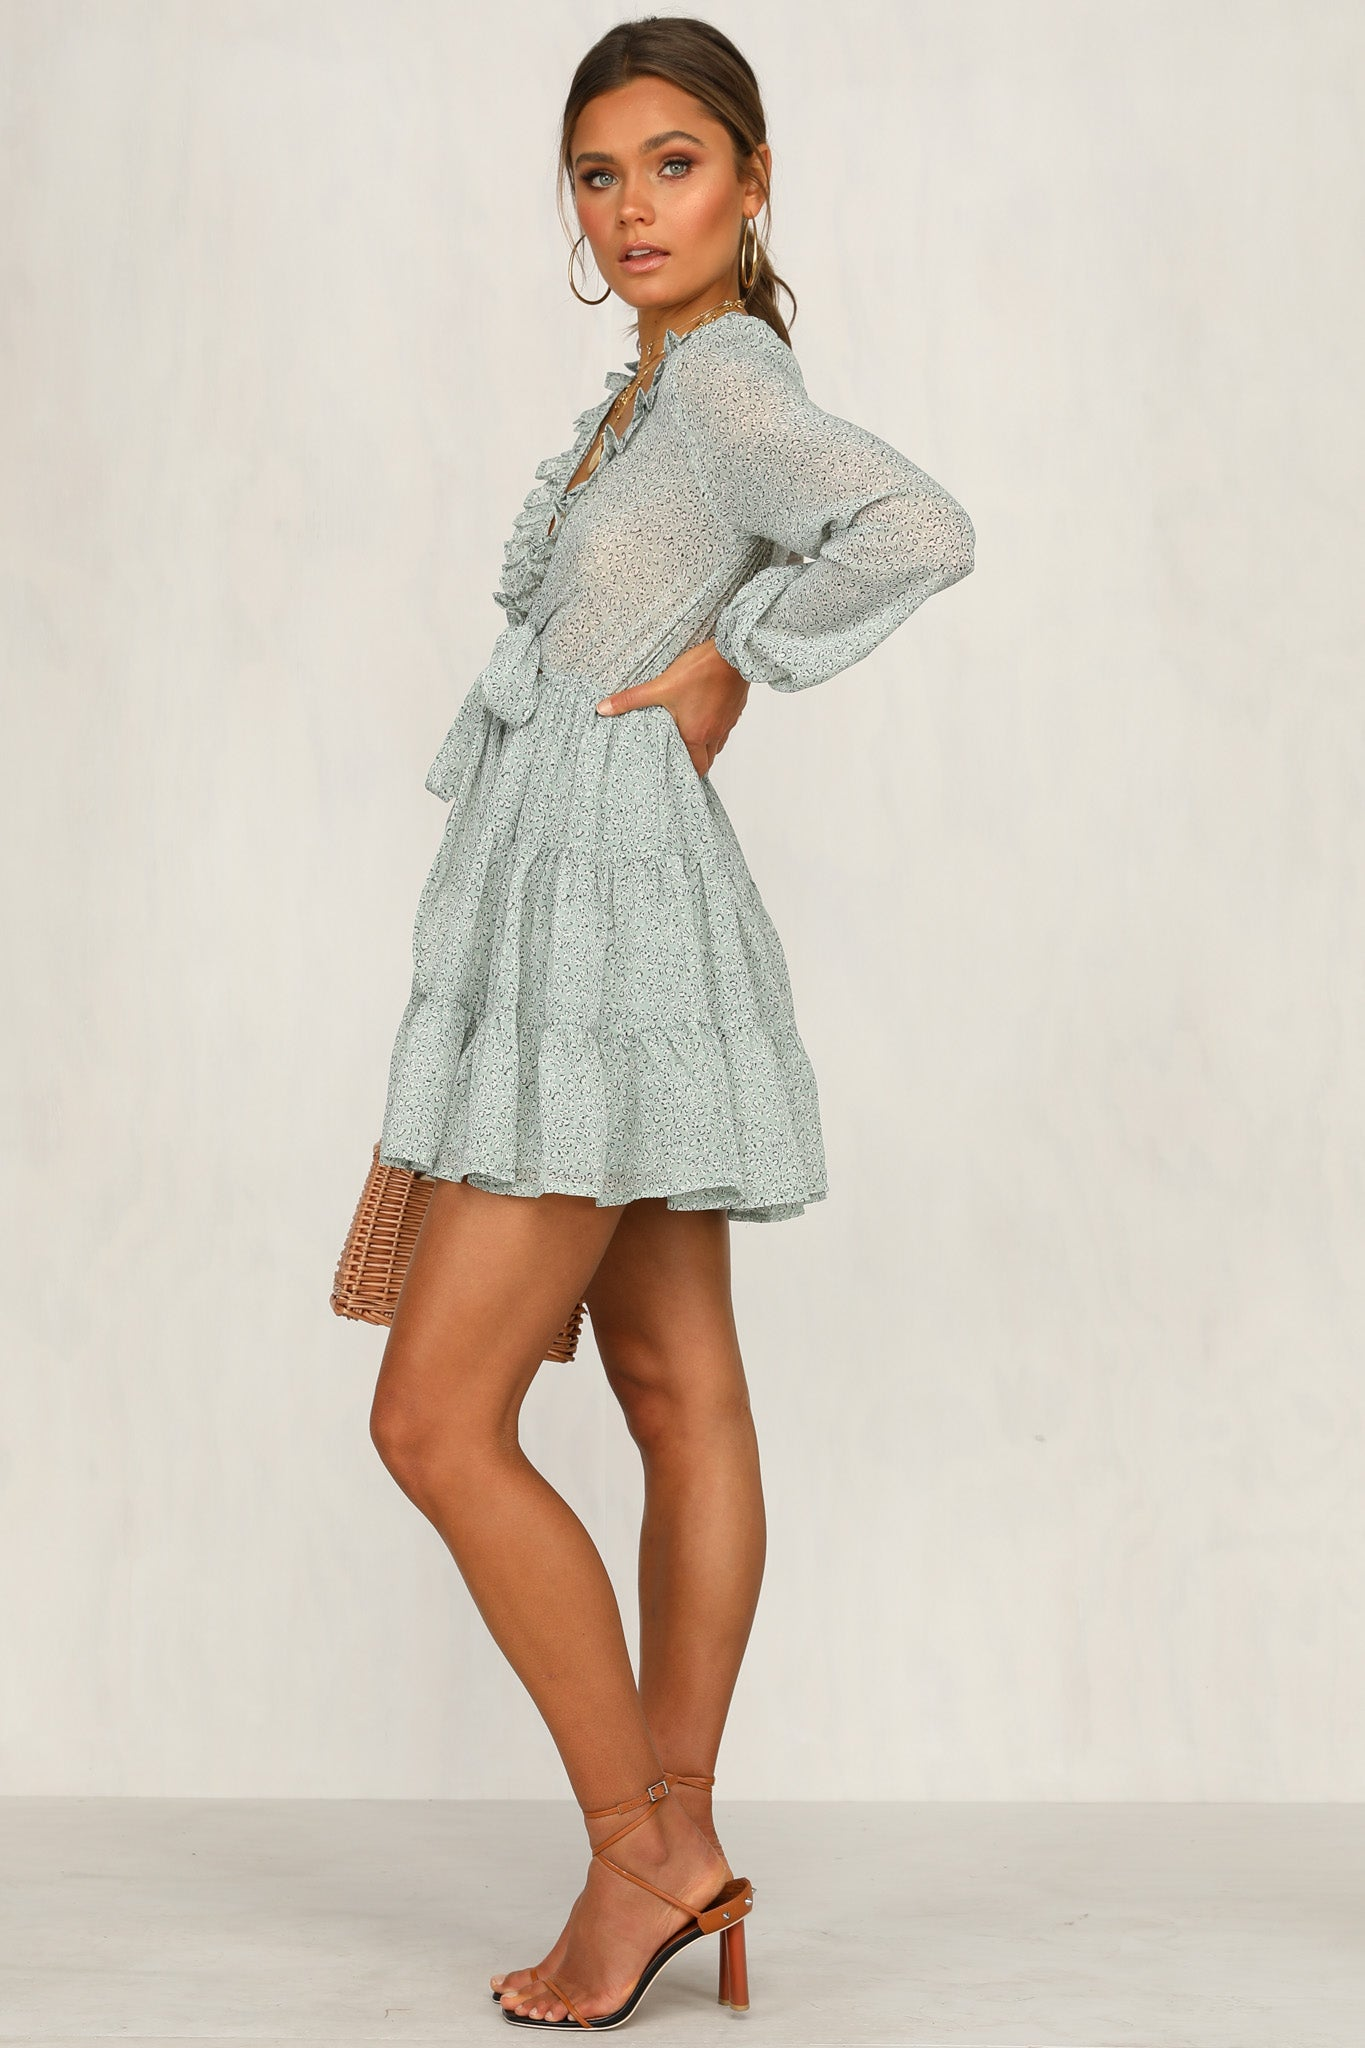 Over The Moon Dress (Mint)